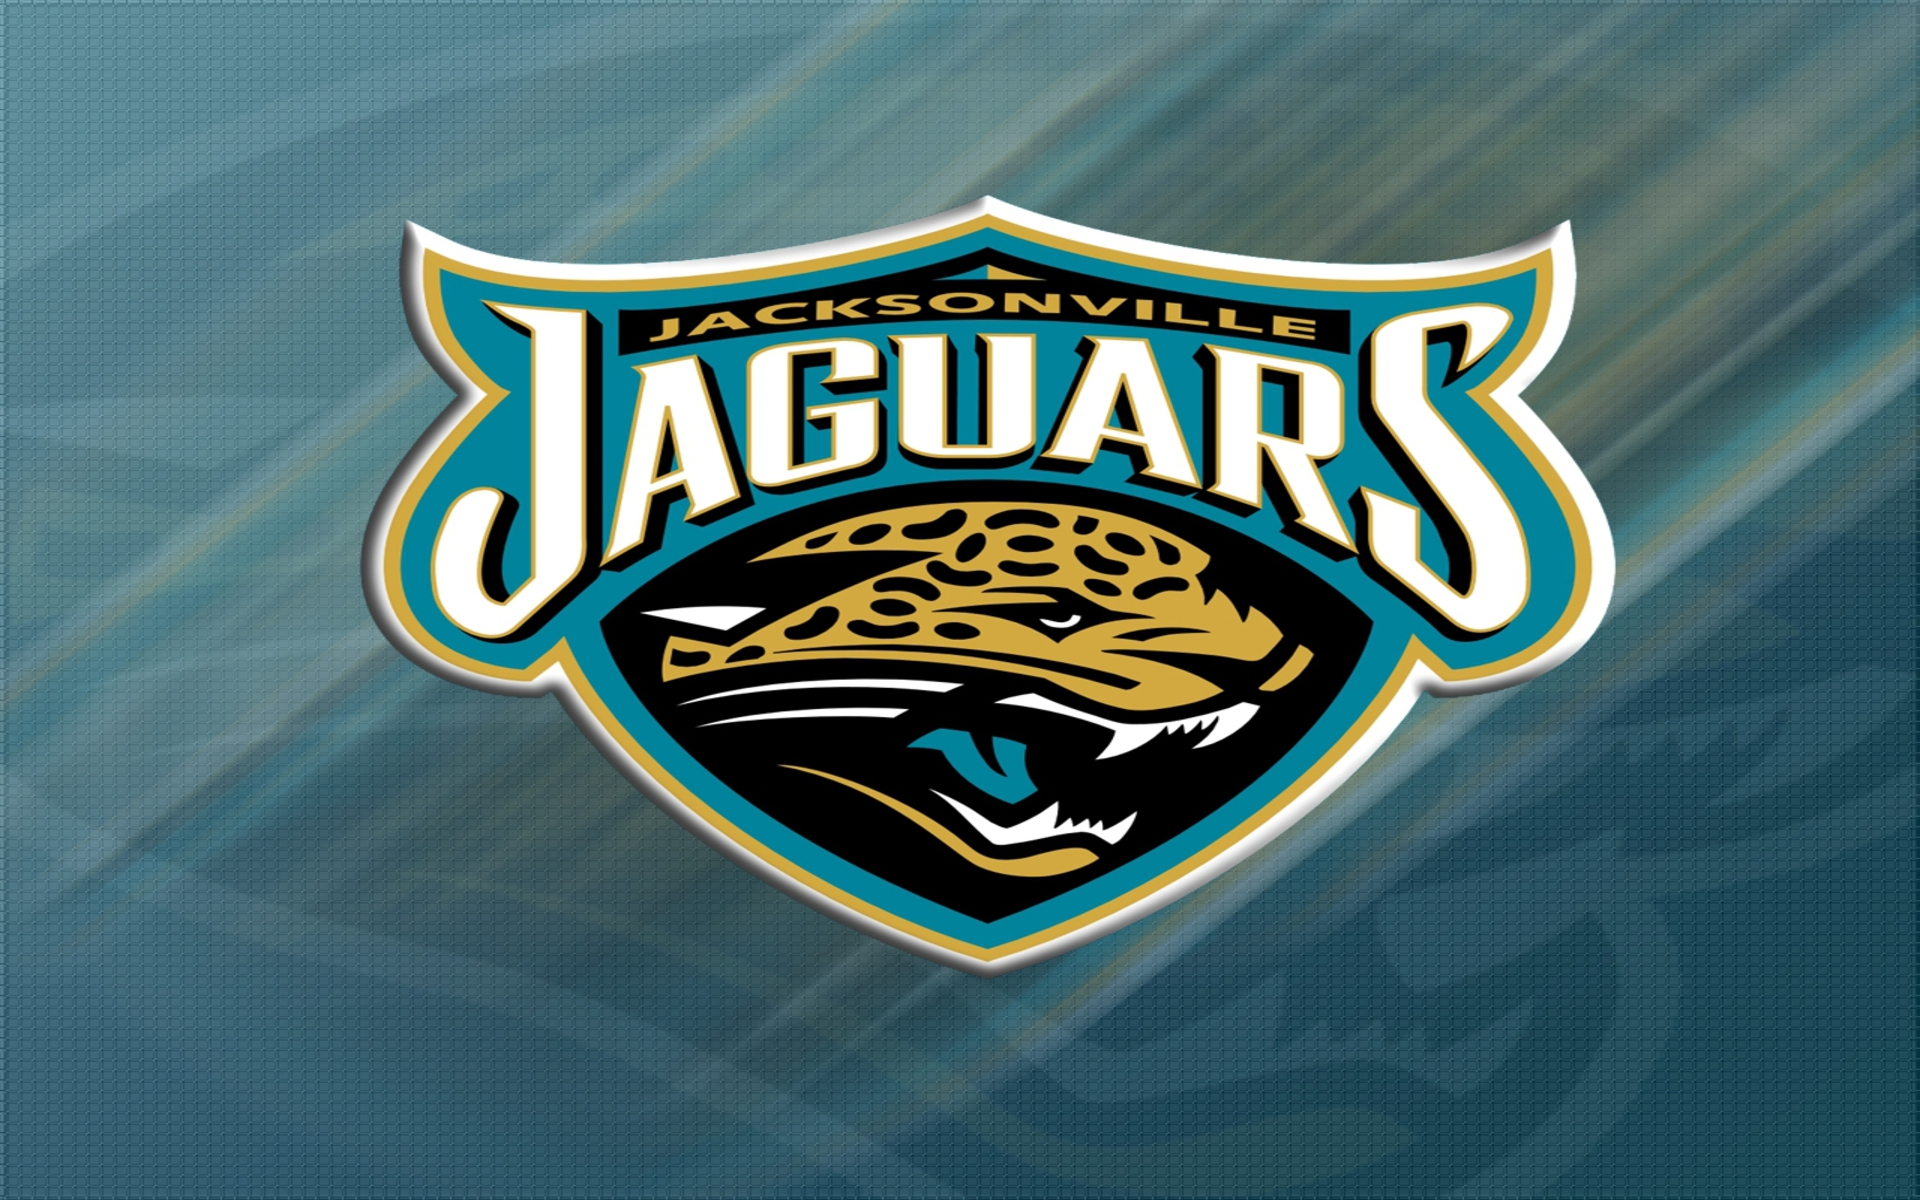 jacksonville jaguars new logo wallpaper - photo #25